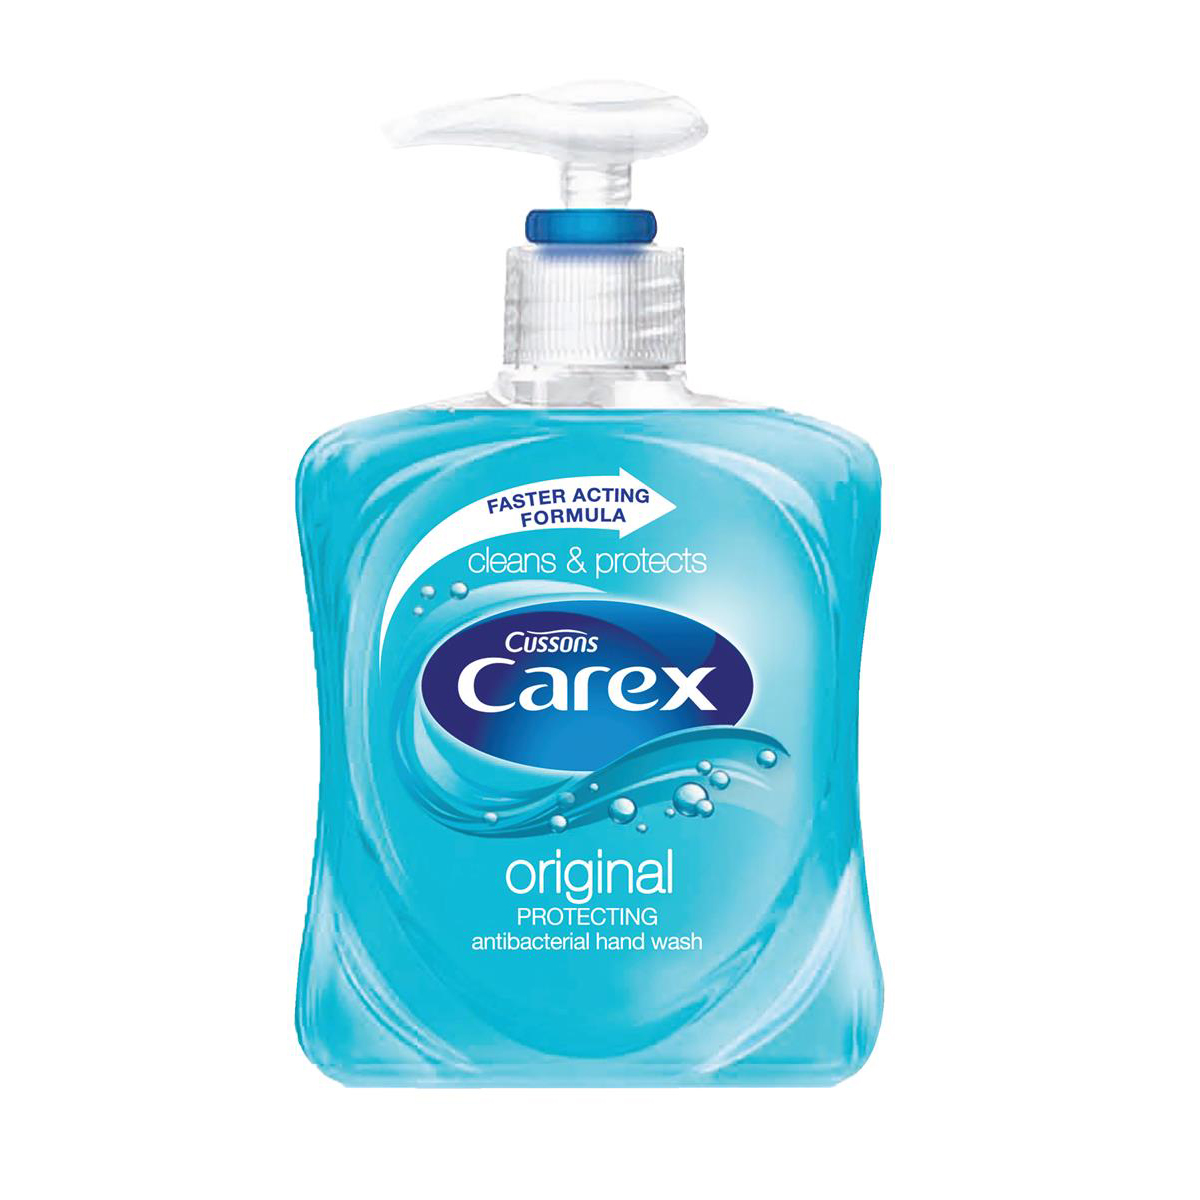 Carex Liquid Soap Hand Wash 500ml Ref 0604021